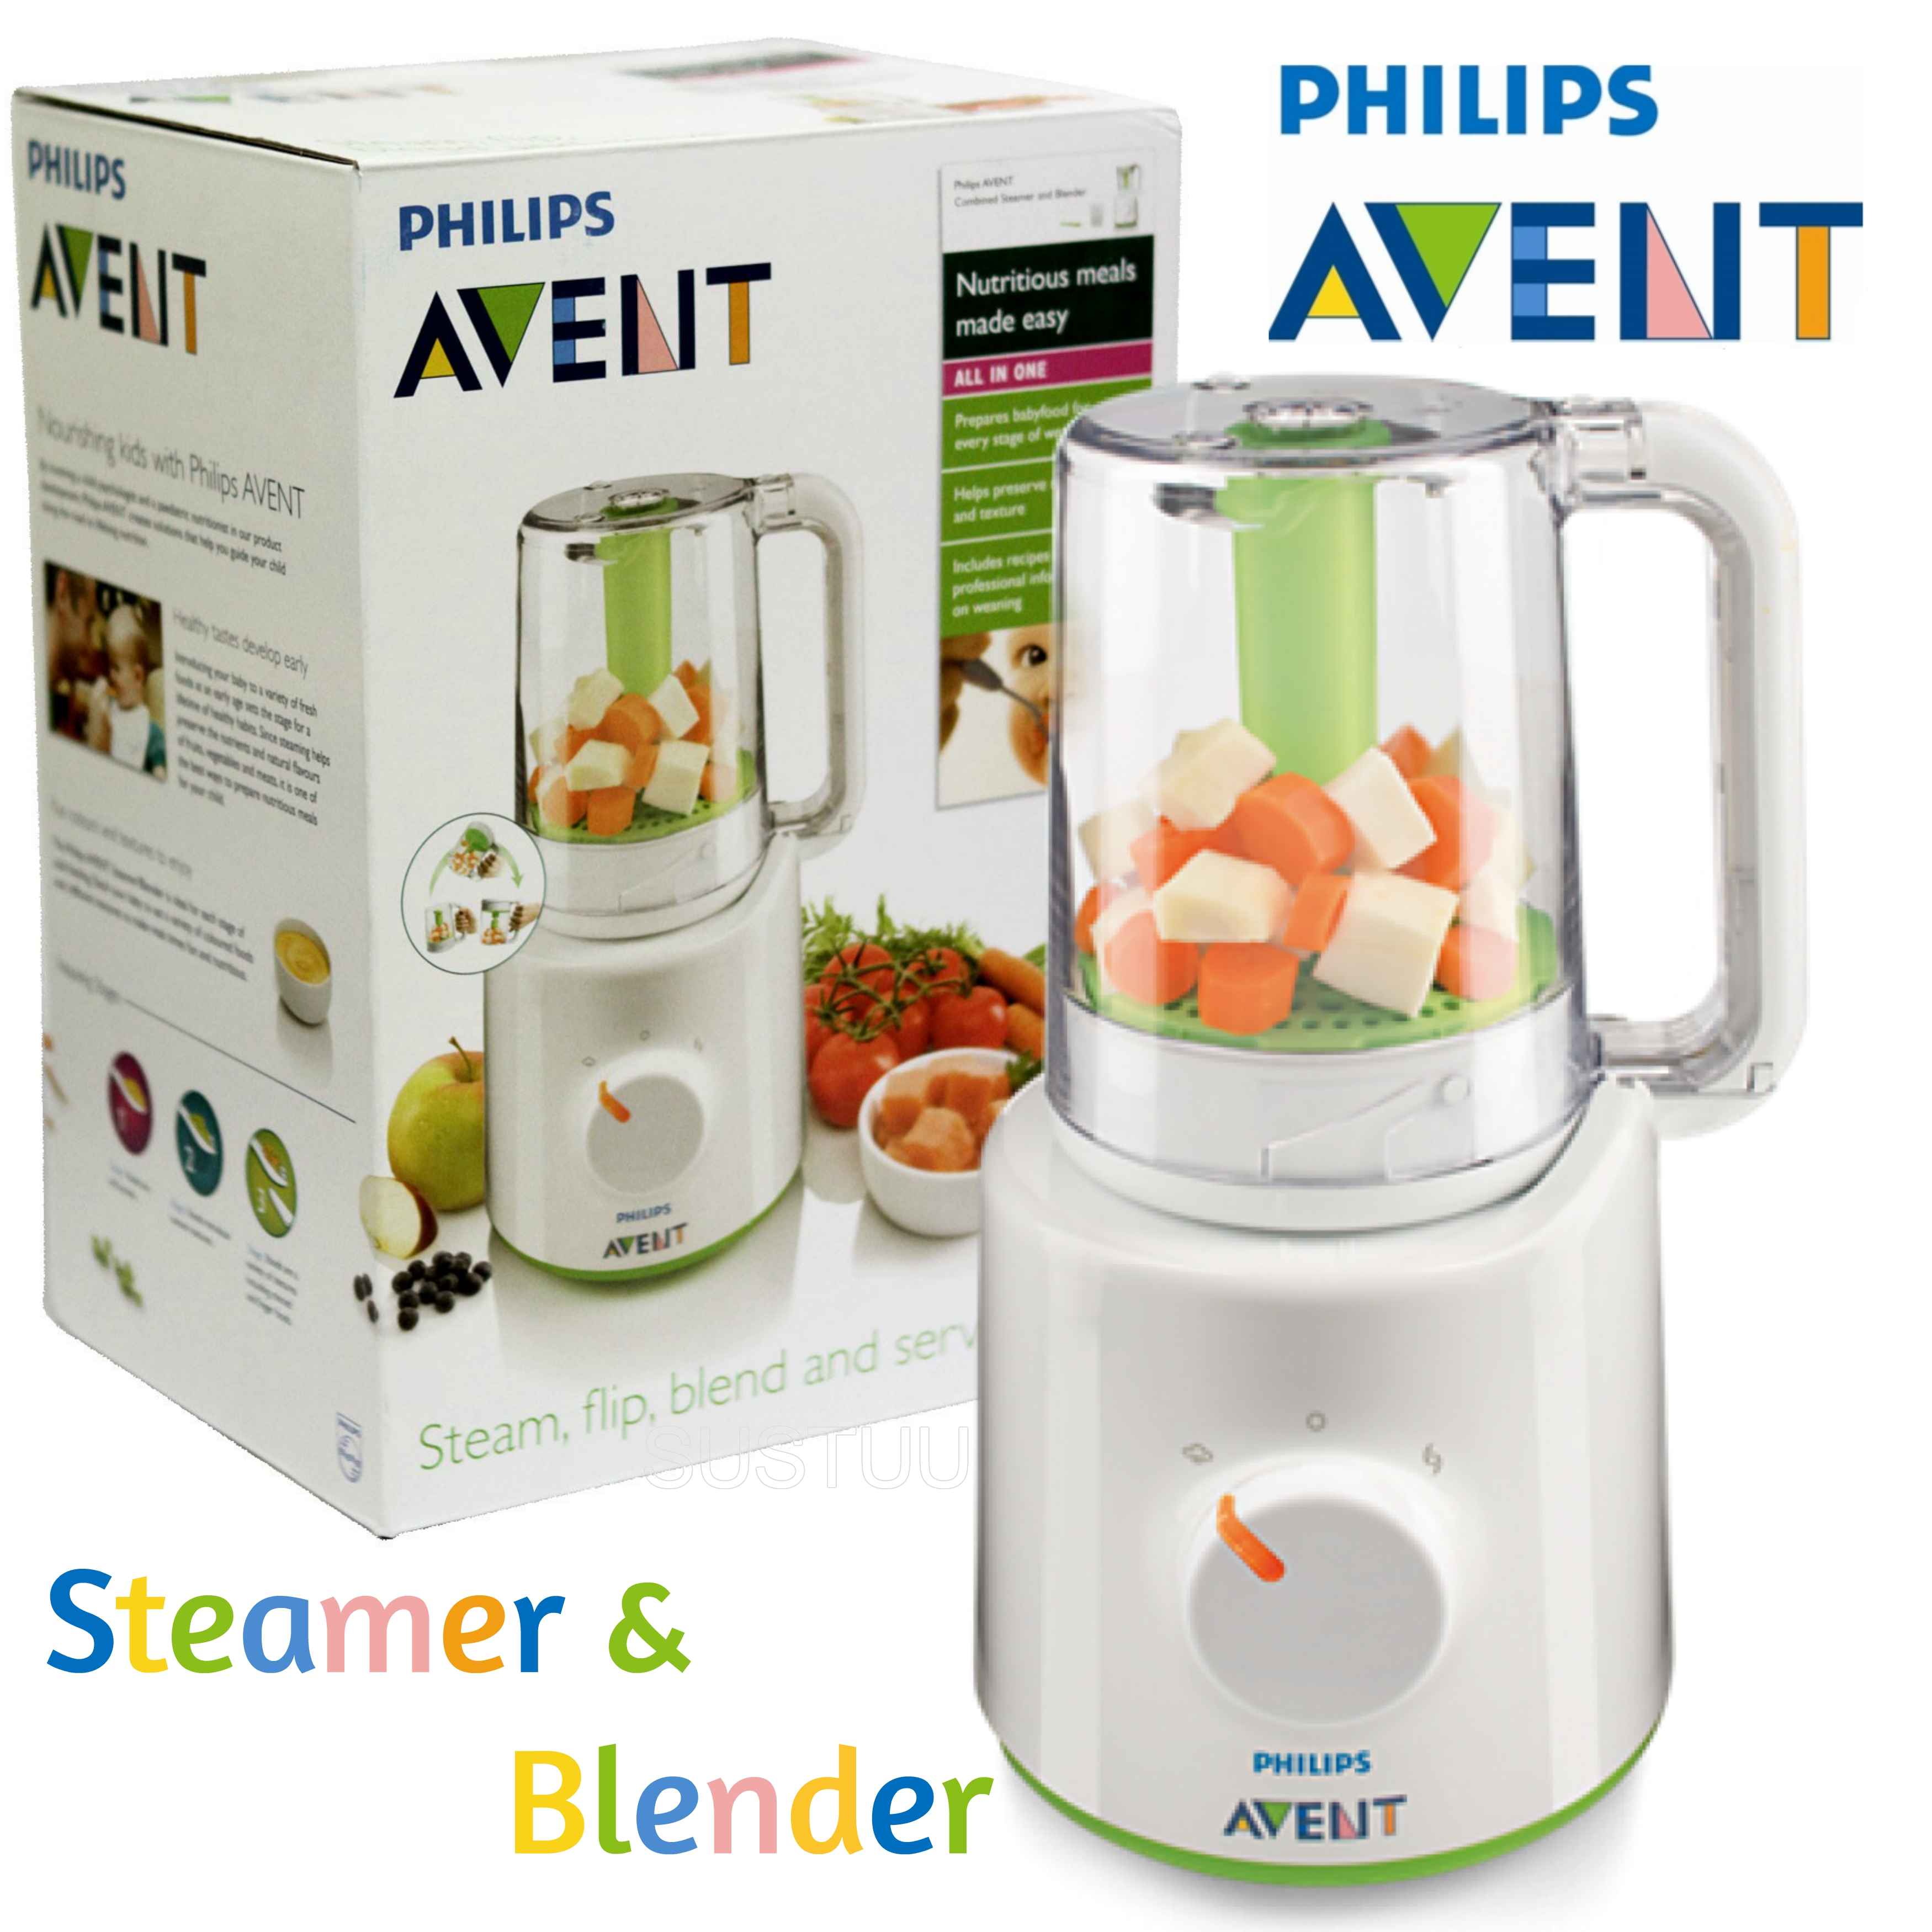 Philips Avent Combined Steamer & Blender|BPA Free Processor|SCF870/21|For Baby